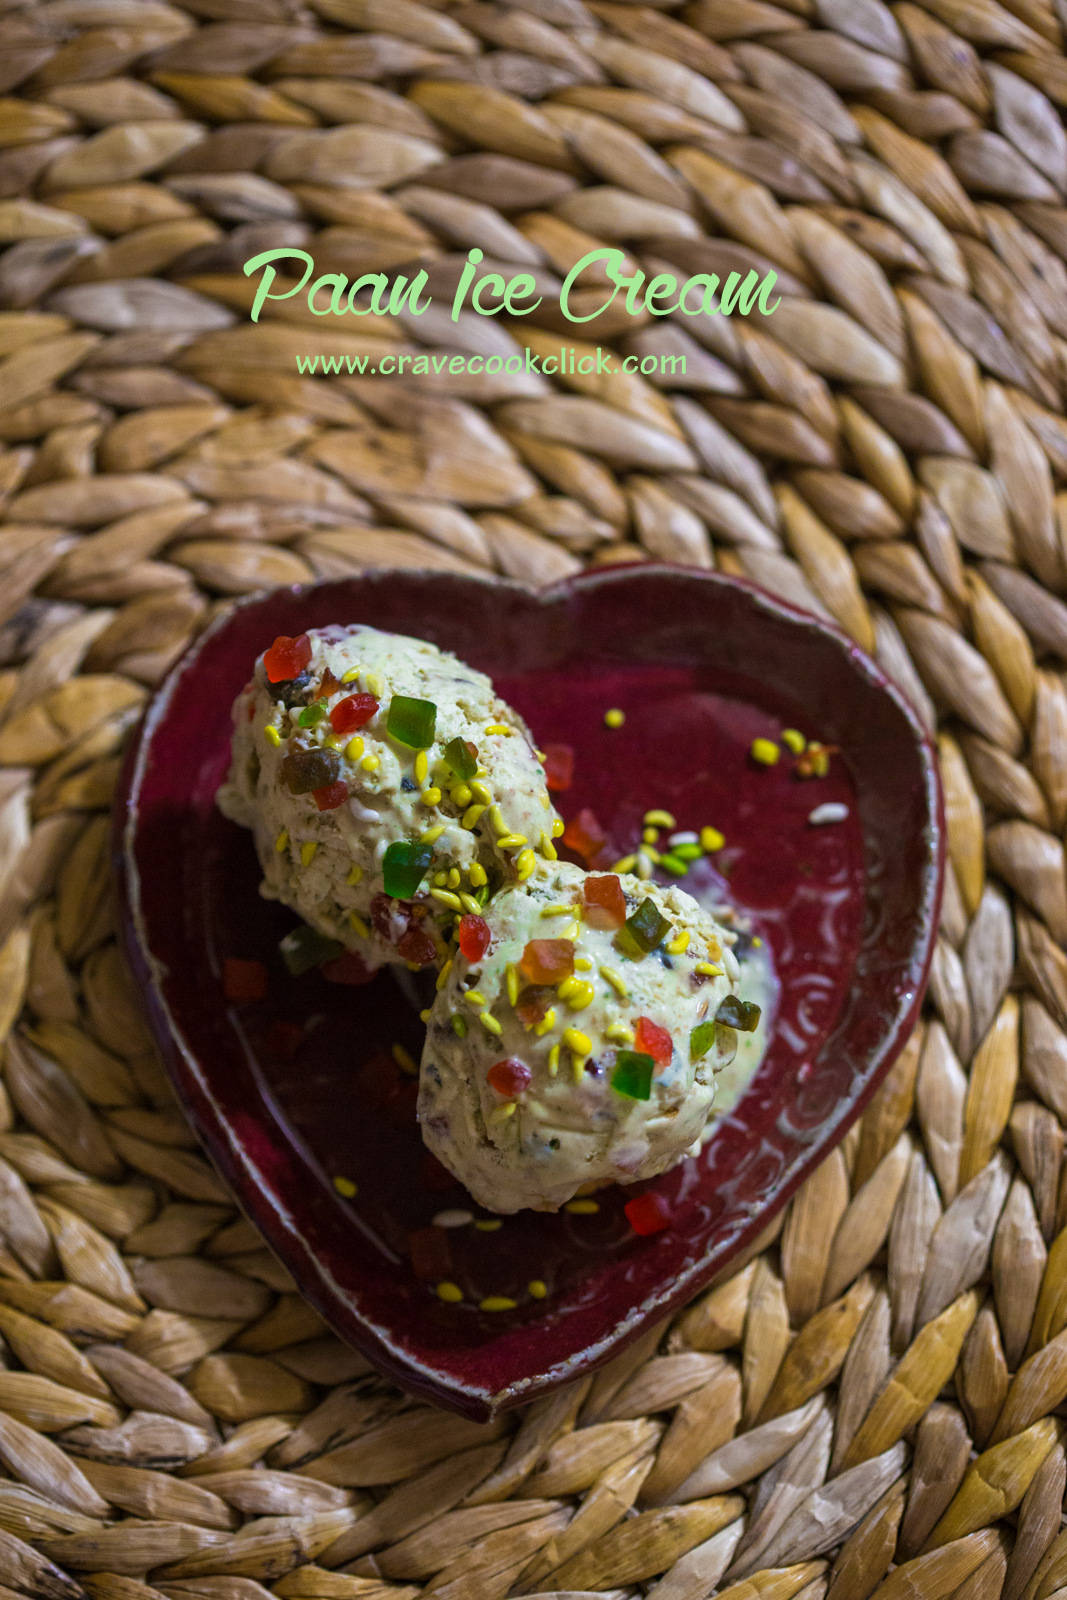 paan ice cream recipe, how to make paan ice cream, easy ice cream recipe, homemade ice cream recipes,